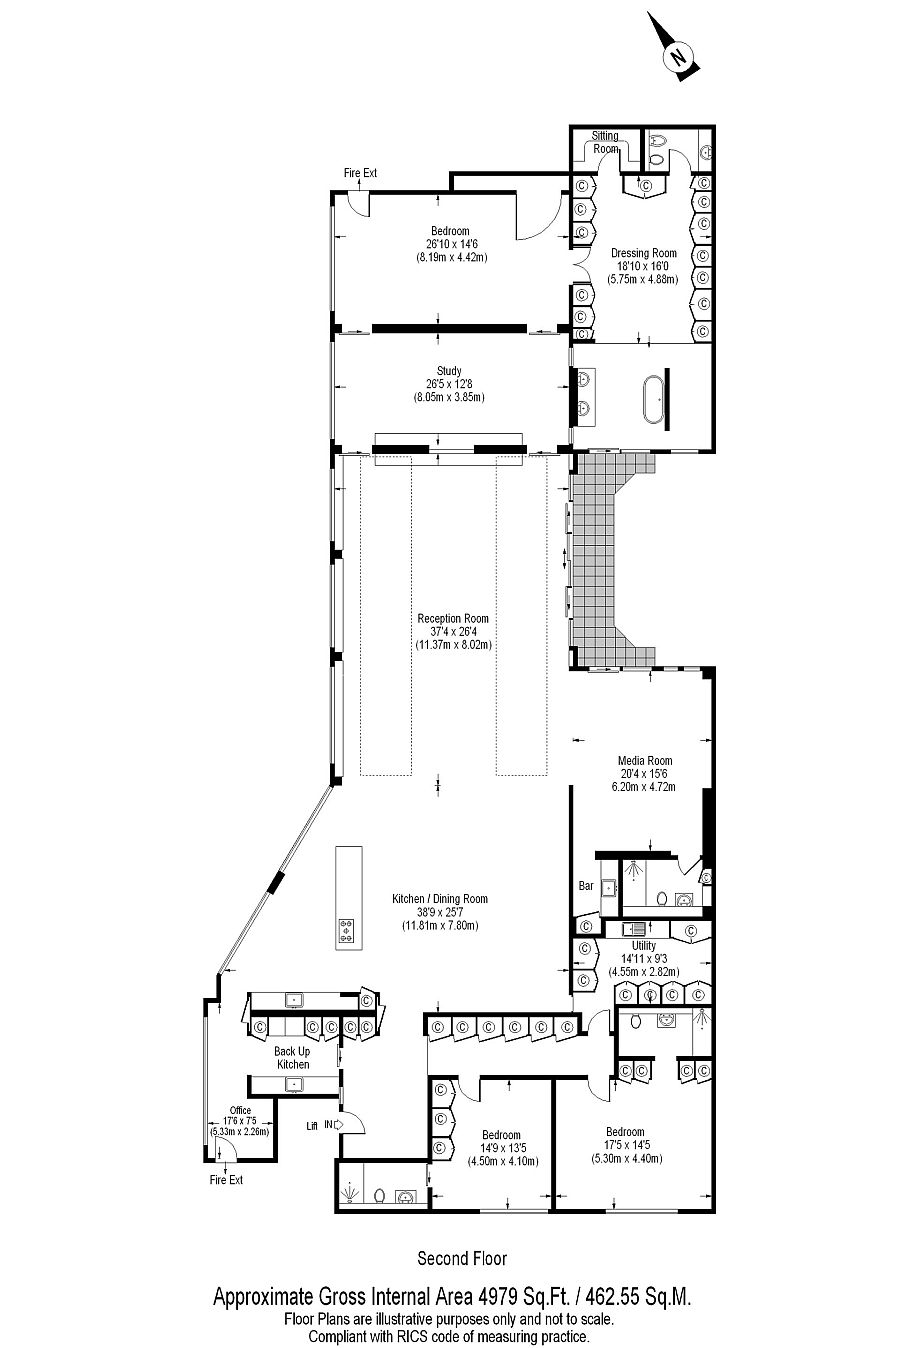 Floor plan of the luxurious London penthouse